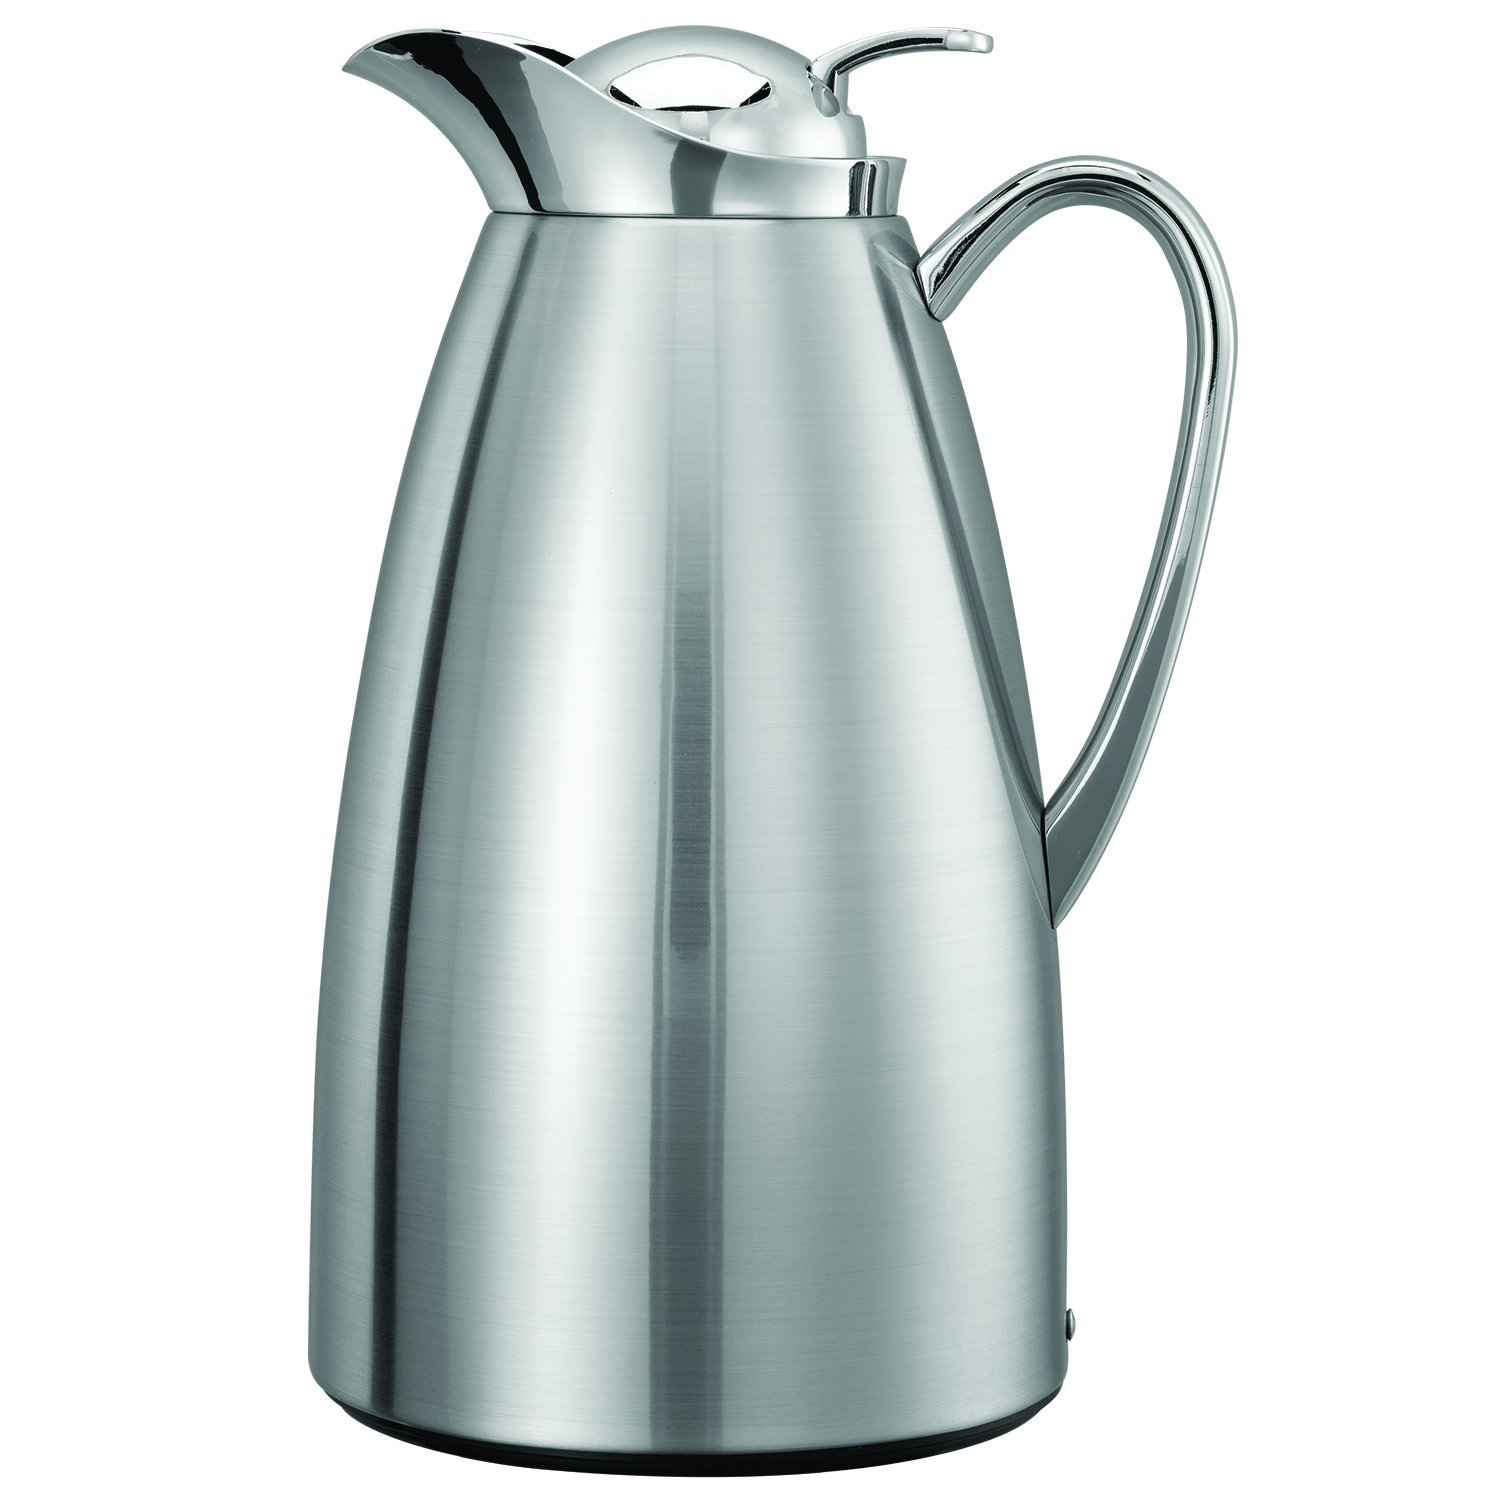 Service Ideas CJZS1BS Carafe, Stainless Steel Lined, Brushed/Polished, 1 L